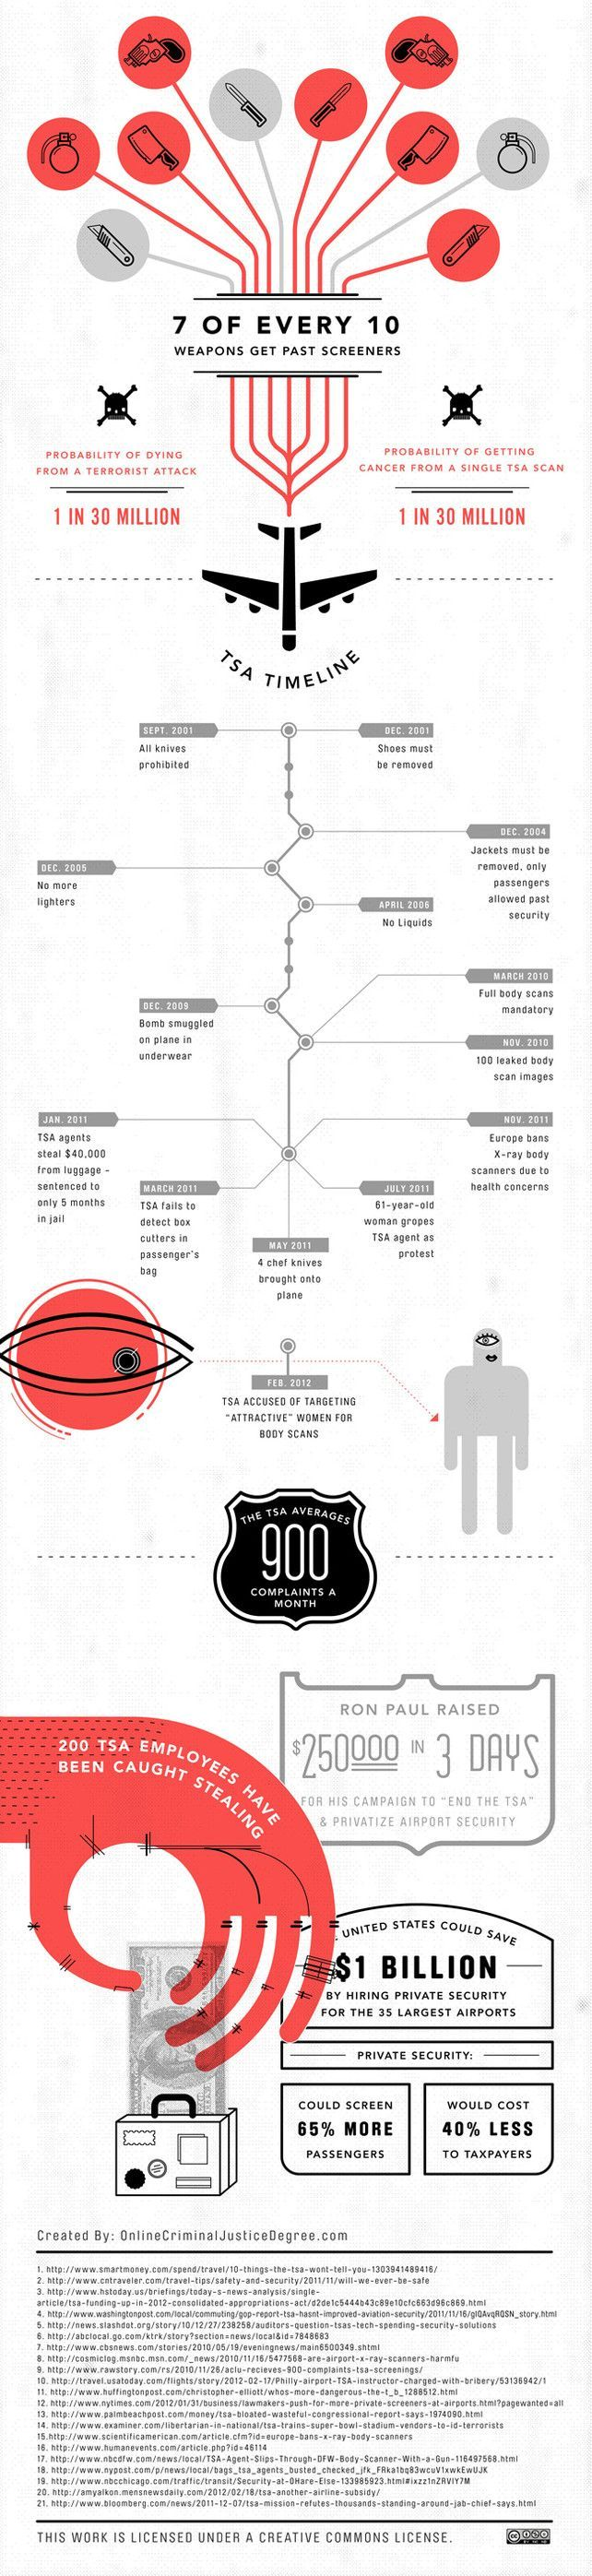 65 best inphography images on Pinterest   Infographic, Infographics ...